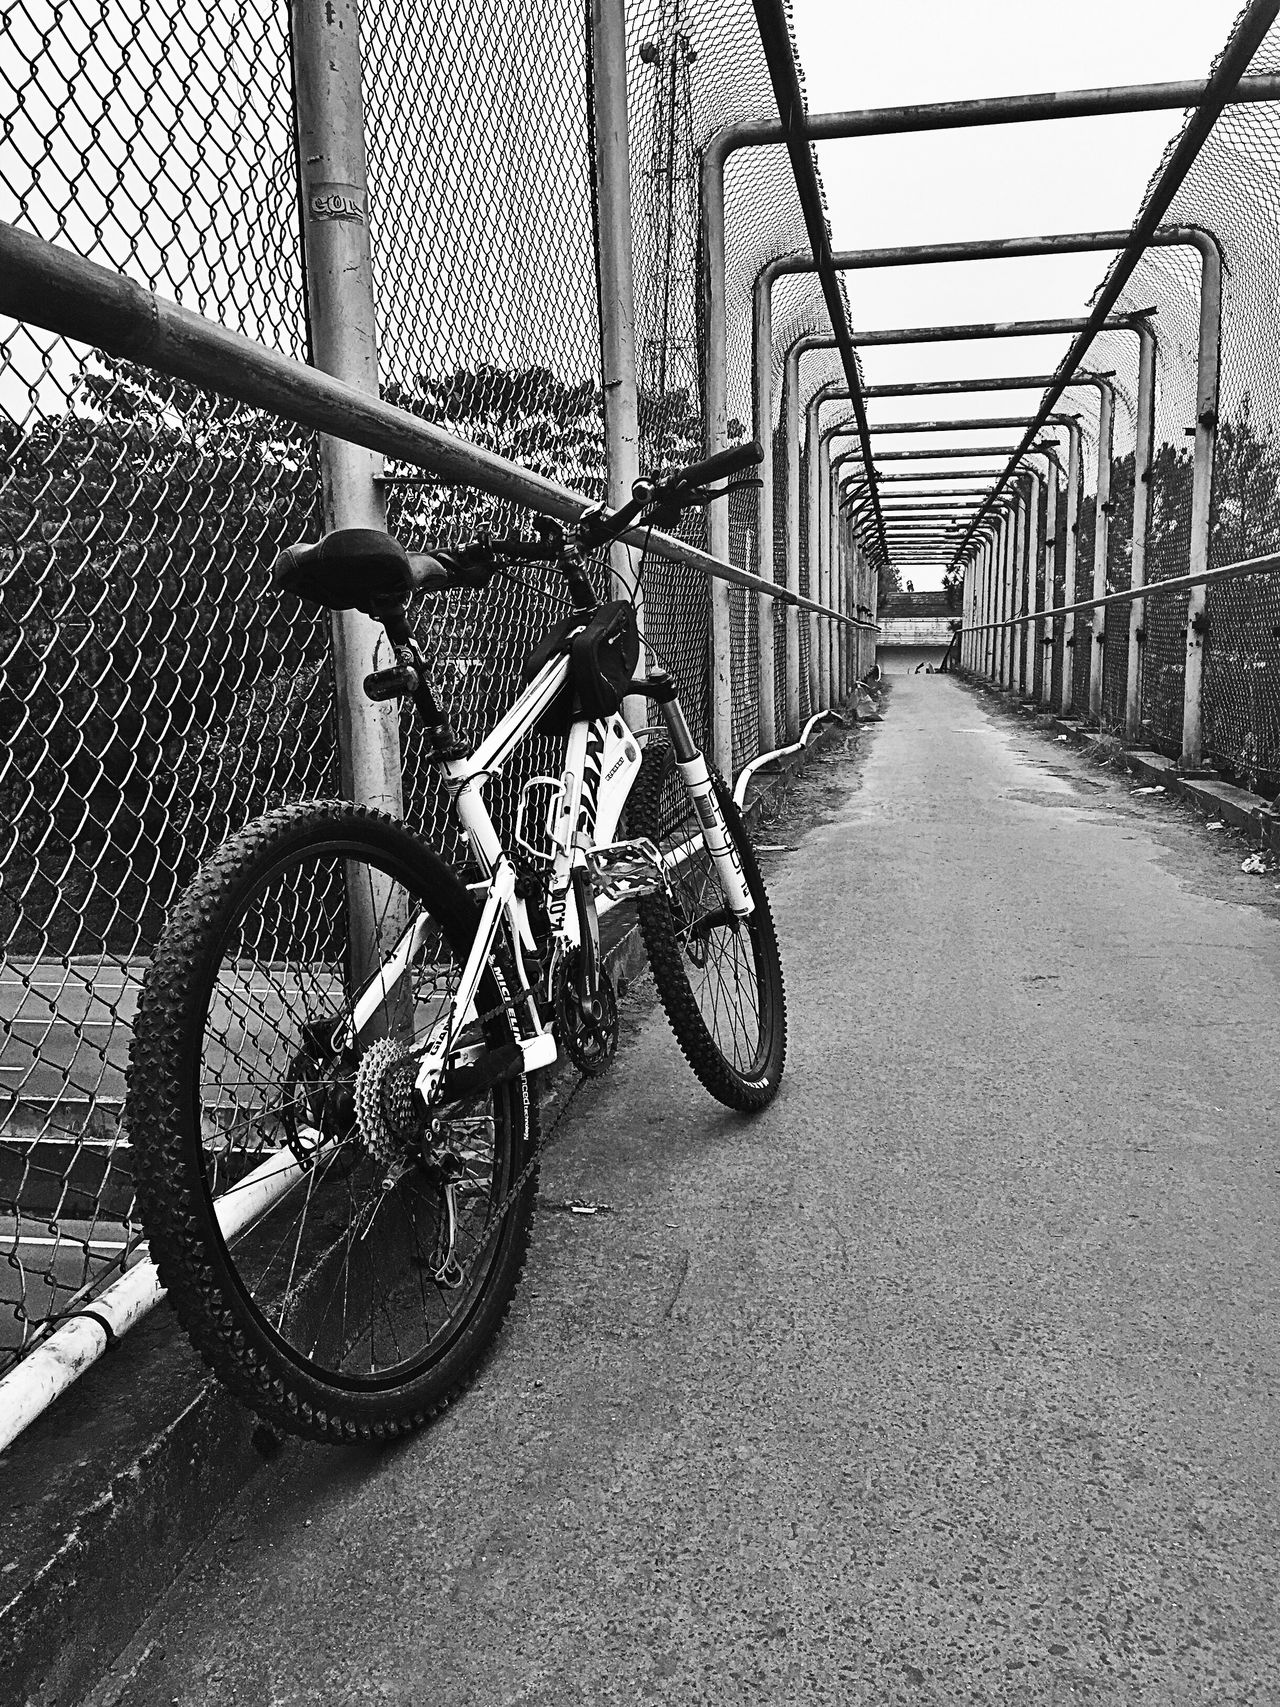 Weekend biker Bicycle From My Point Of View Fantastic Exhibition Indonesia_photography Sports Photography Bikeporn Bikephotography Bikephotographer Cyclists In Landscape Black And White Blacknwhite_perfection Bnwphotography Bnw_collection